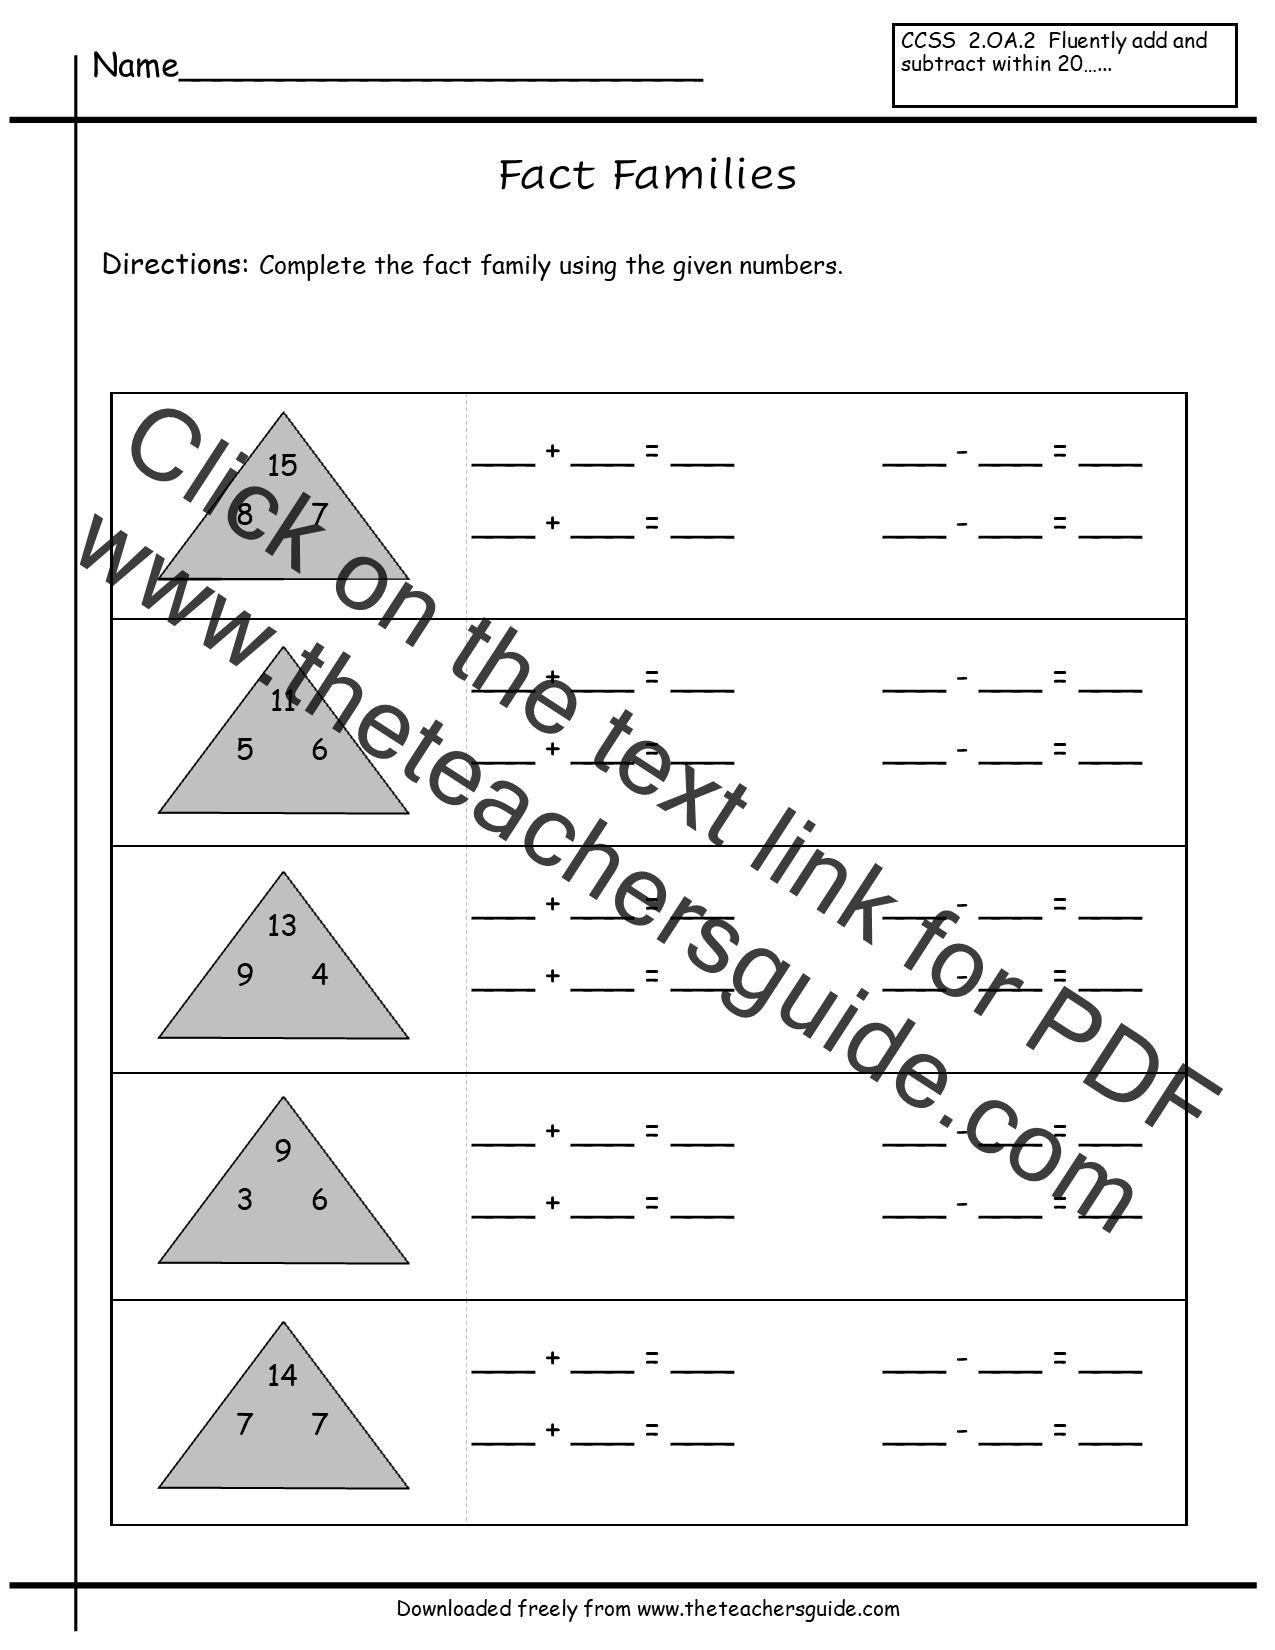 worksheet Fact Family comparing numbers worksheets from the teachers guide fact family worksheets